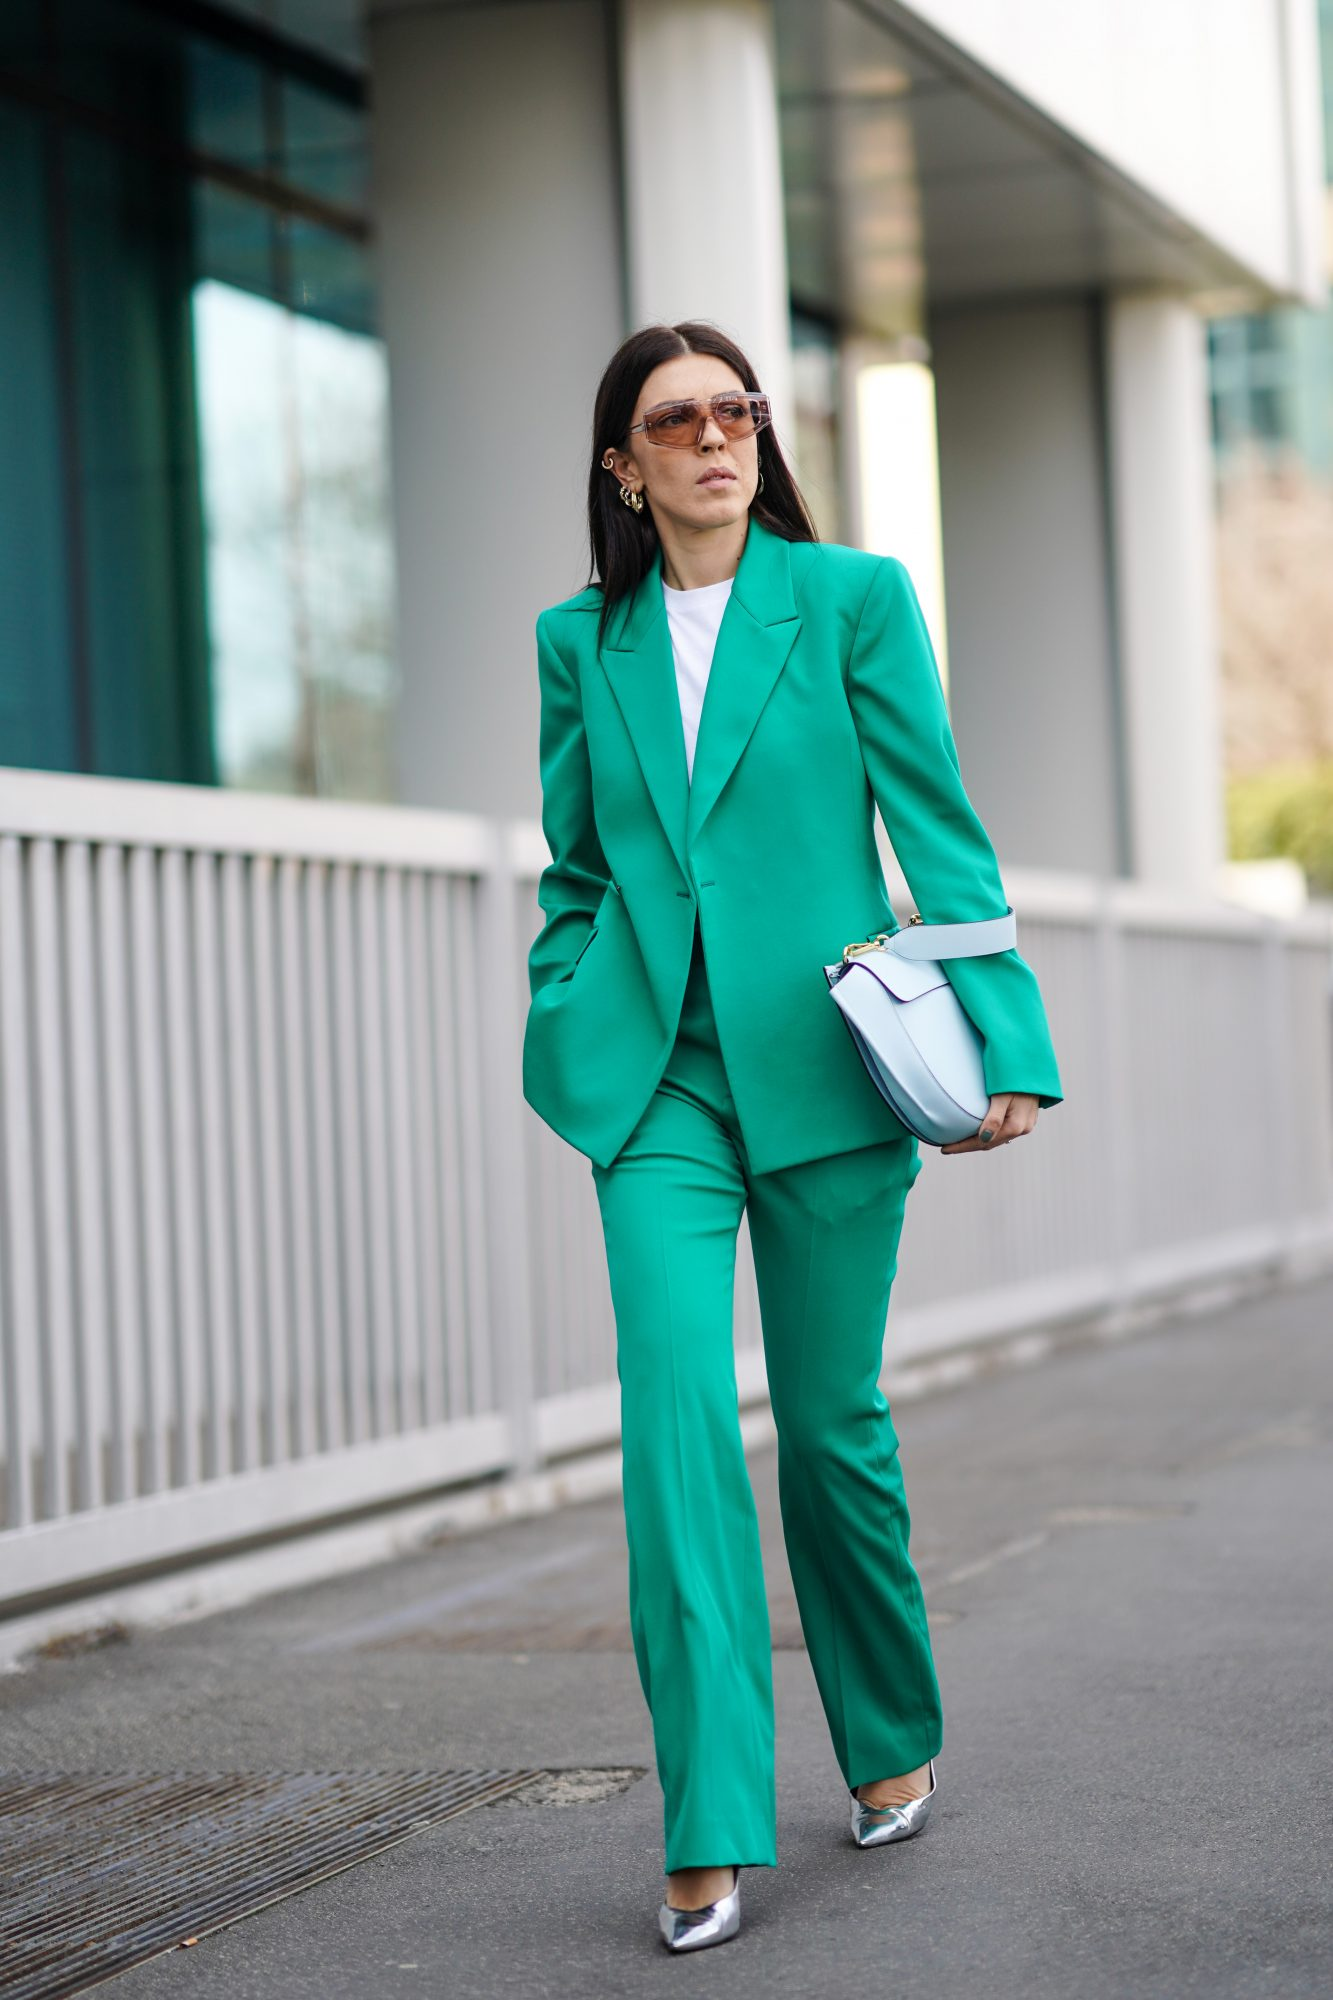 St. Patrick's Day Outfit Ideas, Green Suit